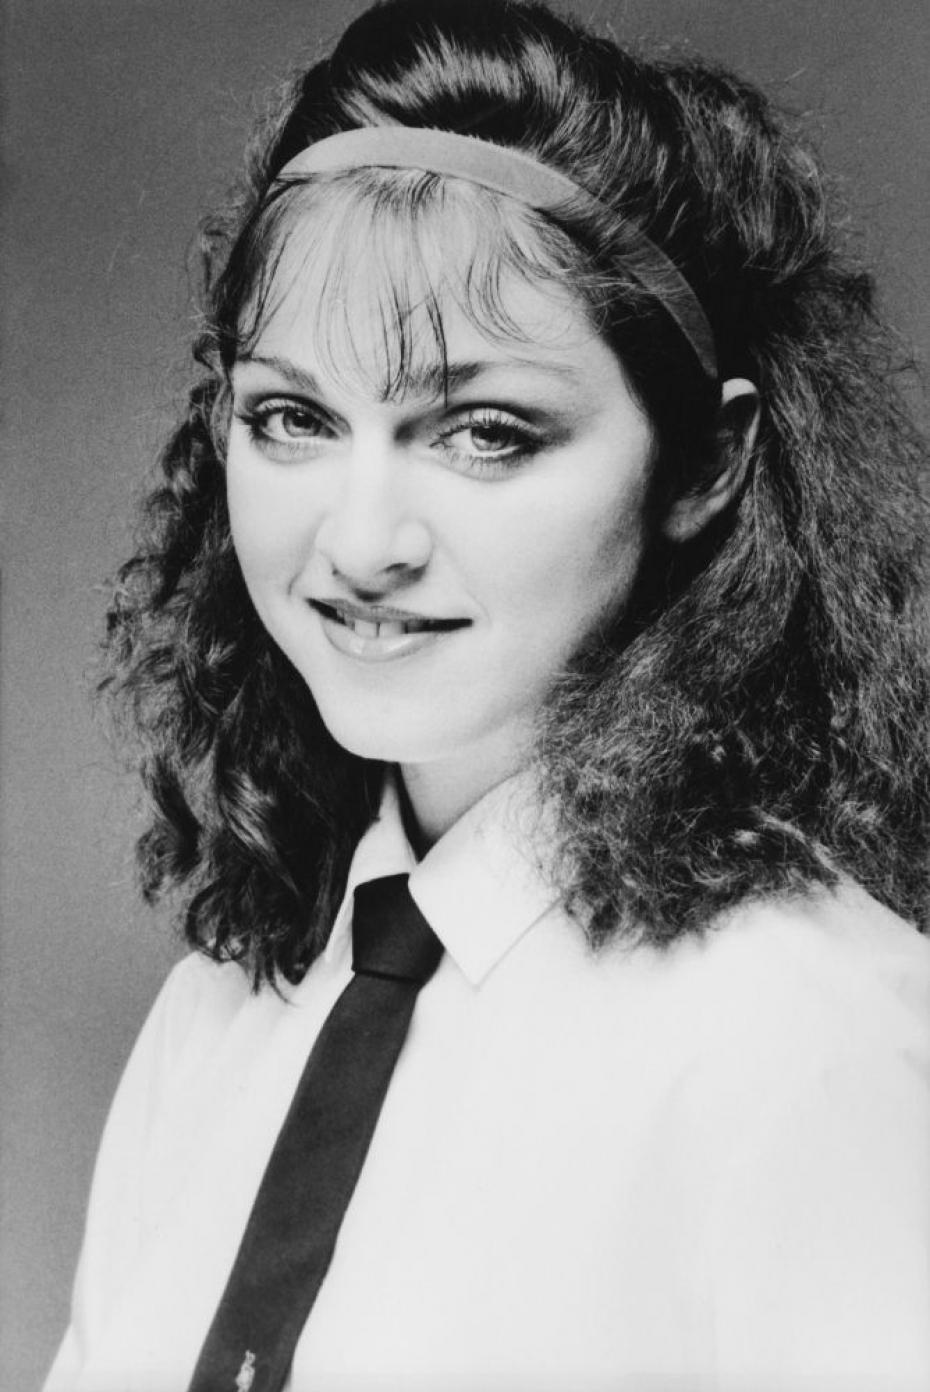 Madonna yearbook photo one at Reddit.com at Reddit.com